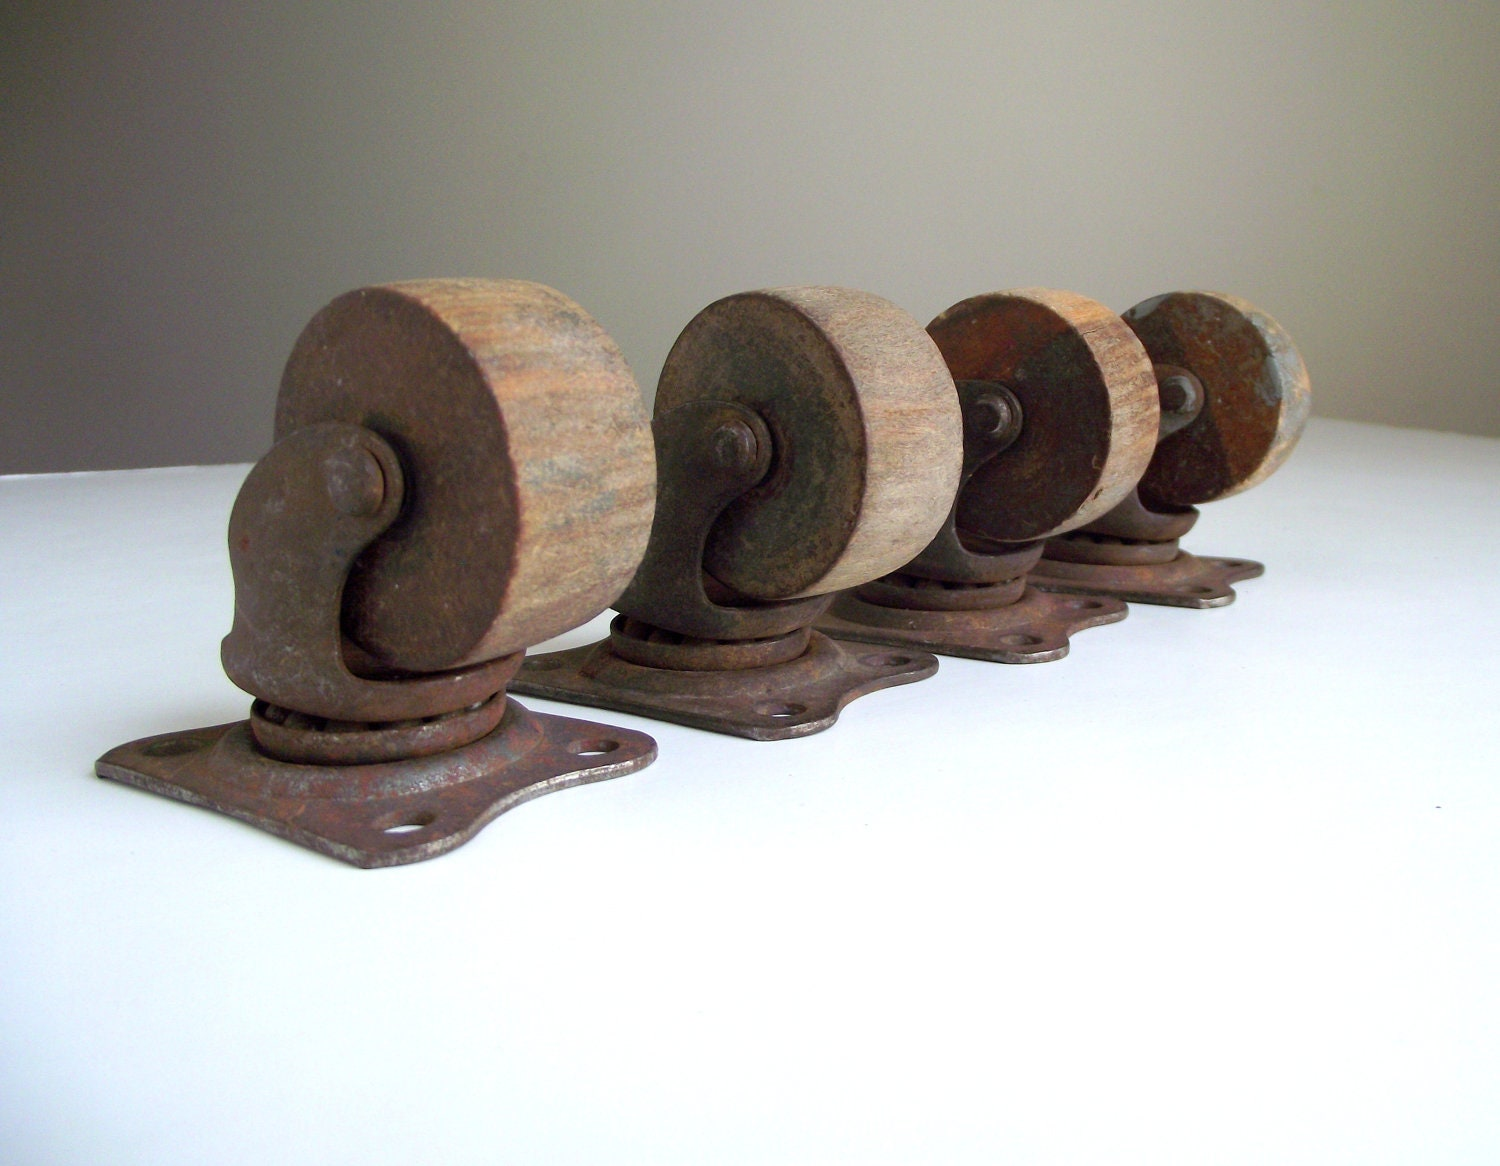 Wood Caster Wheels With Metal Mounting Plates Set Of 4